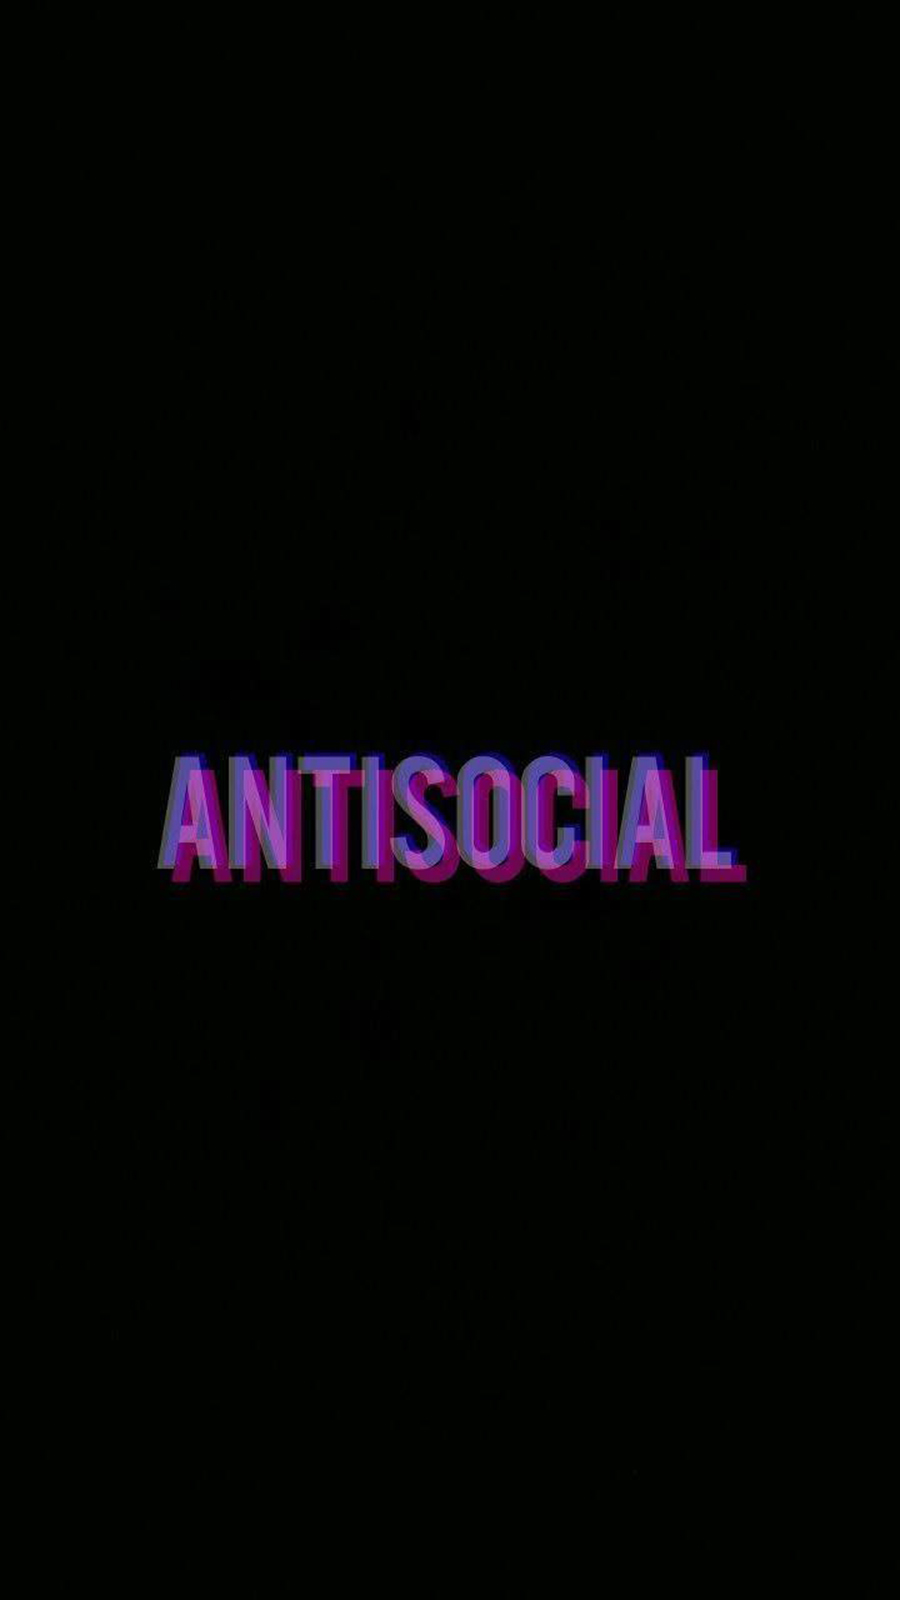 Antisocial Wallpapers Free Download